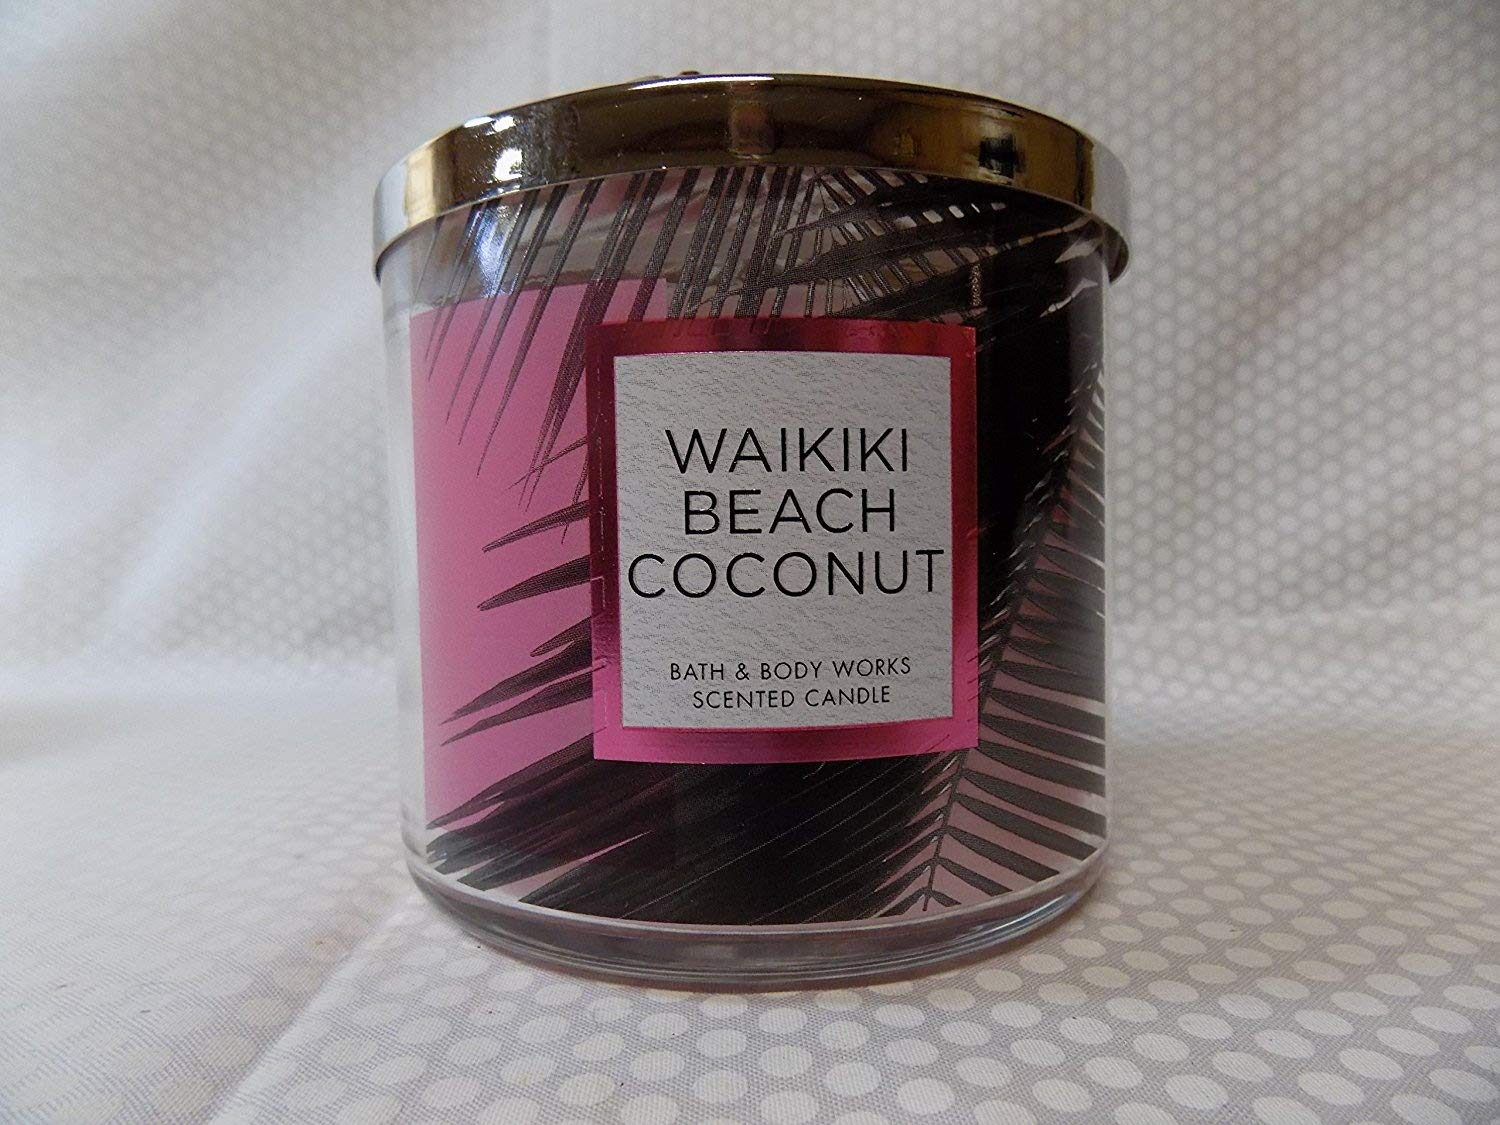 Bath and Body Works 3 Wick Scented Waikiki Beach Coconut 14.5 Ounce with Essential Oils BBW